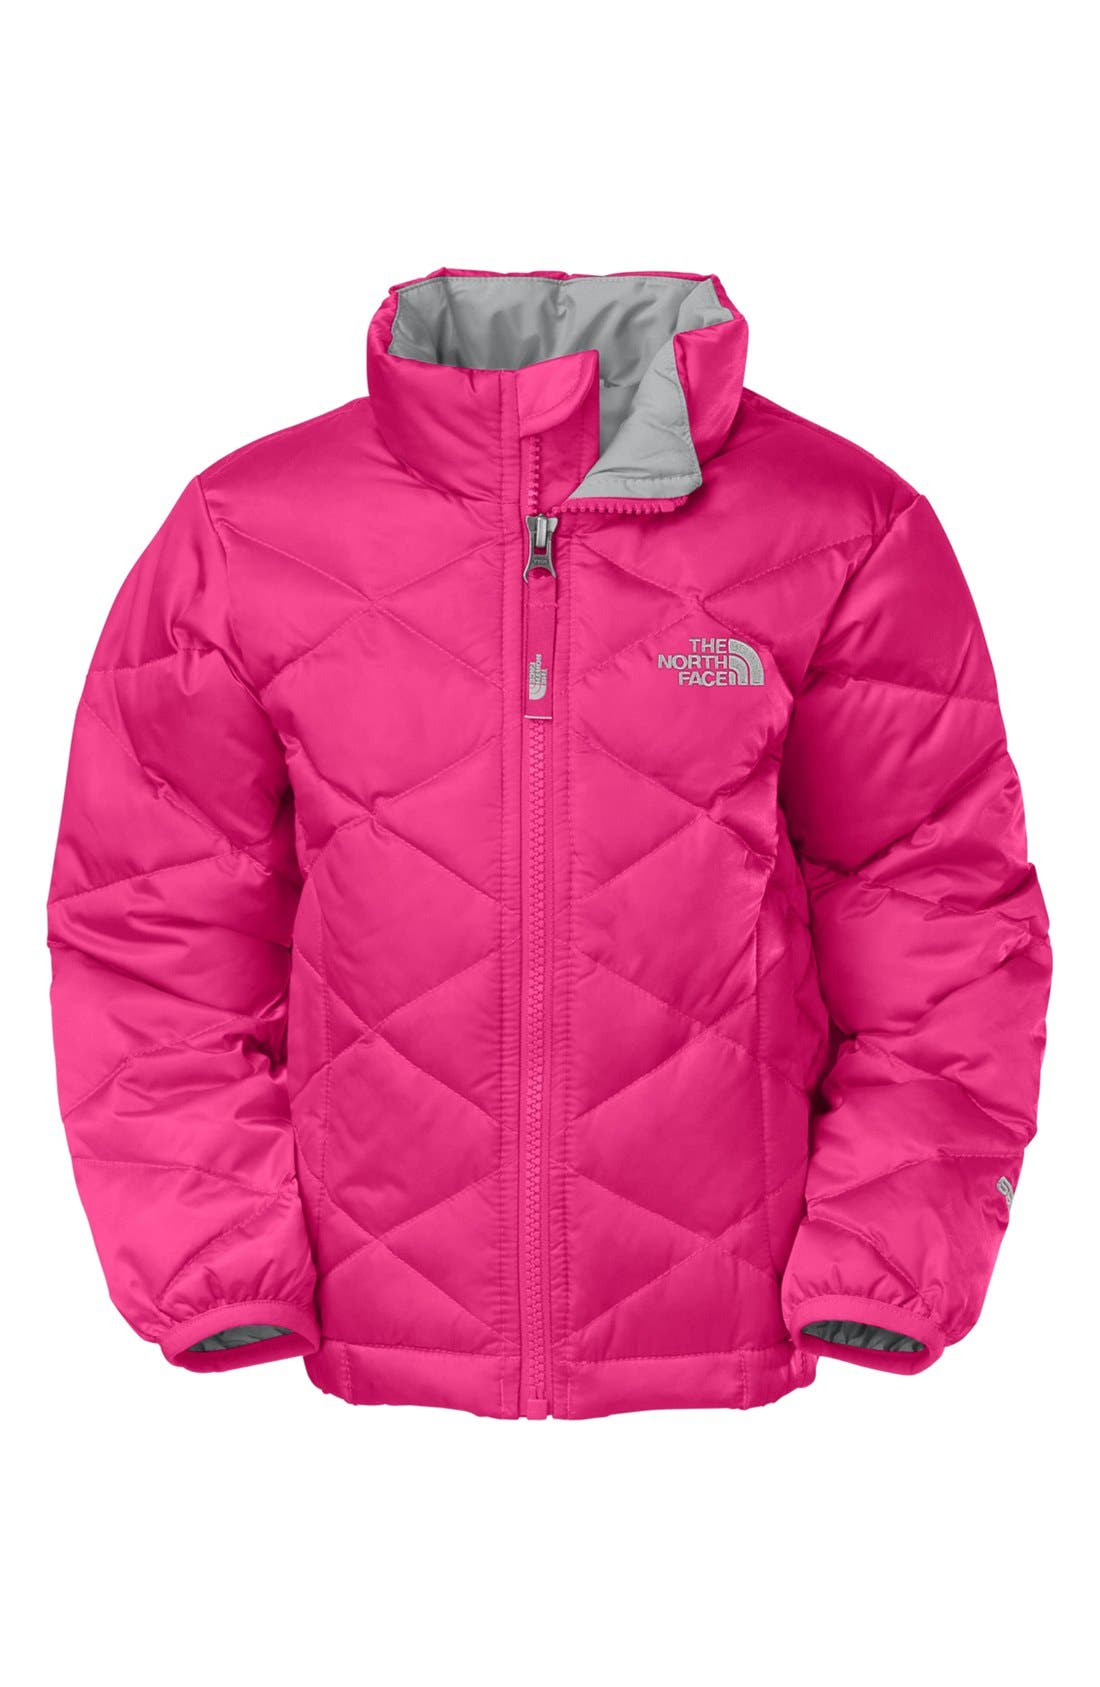 Alternate Image 1 Selected - The North Face 'Aconcagua' Jacket (Toddler)(Nordstrom Exclusive)